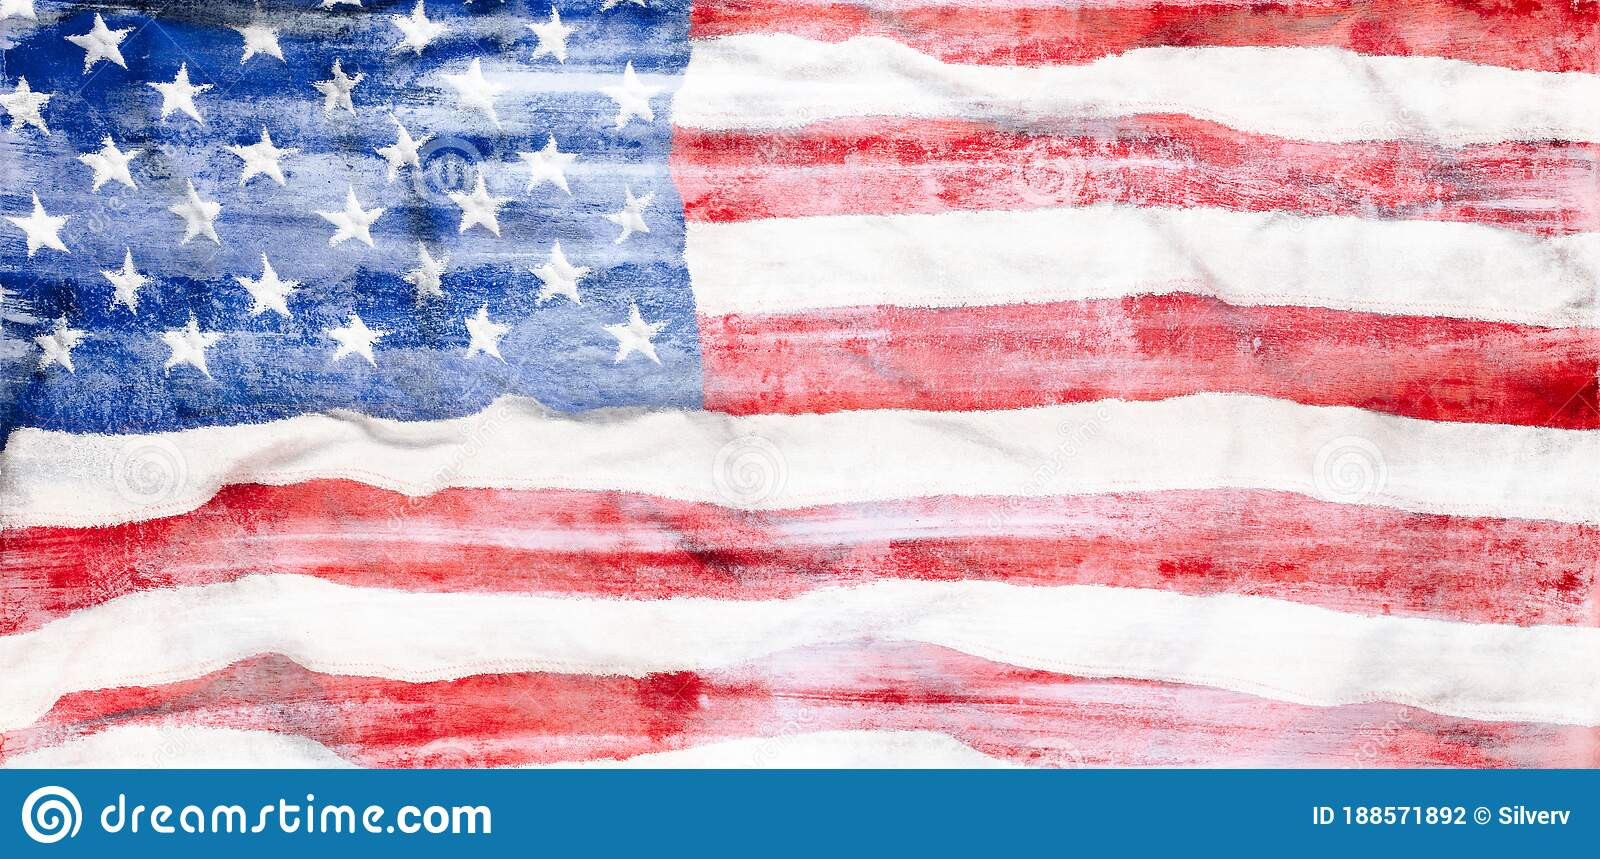 rough painted us american flag usa abstract patriotism background wallpaper